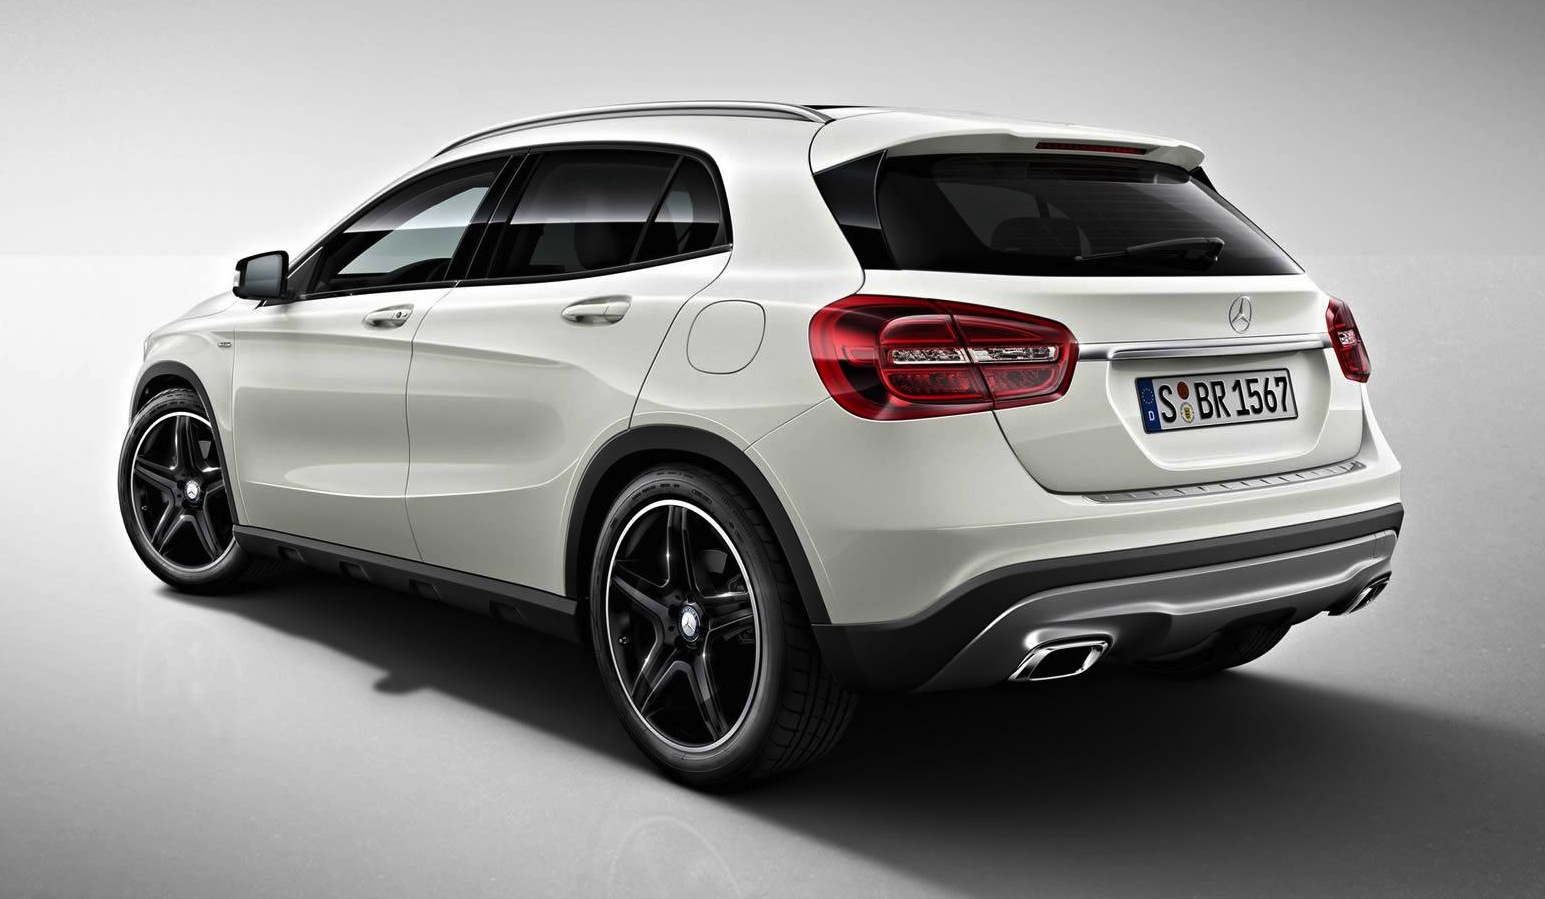 mercedes benz gla edition 1 limited edition compact suv revealed photos caradvice. Black Bedroom Furniture Sets. Home Design Ideas